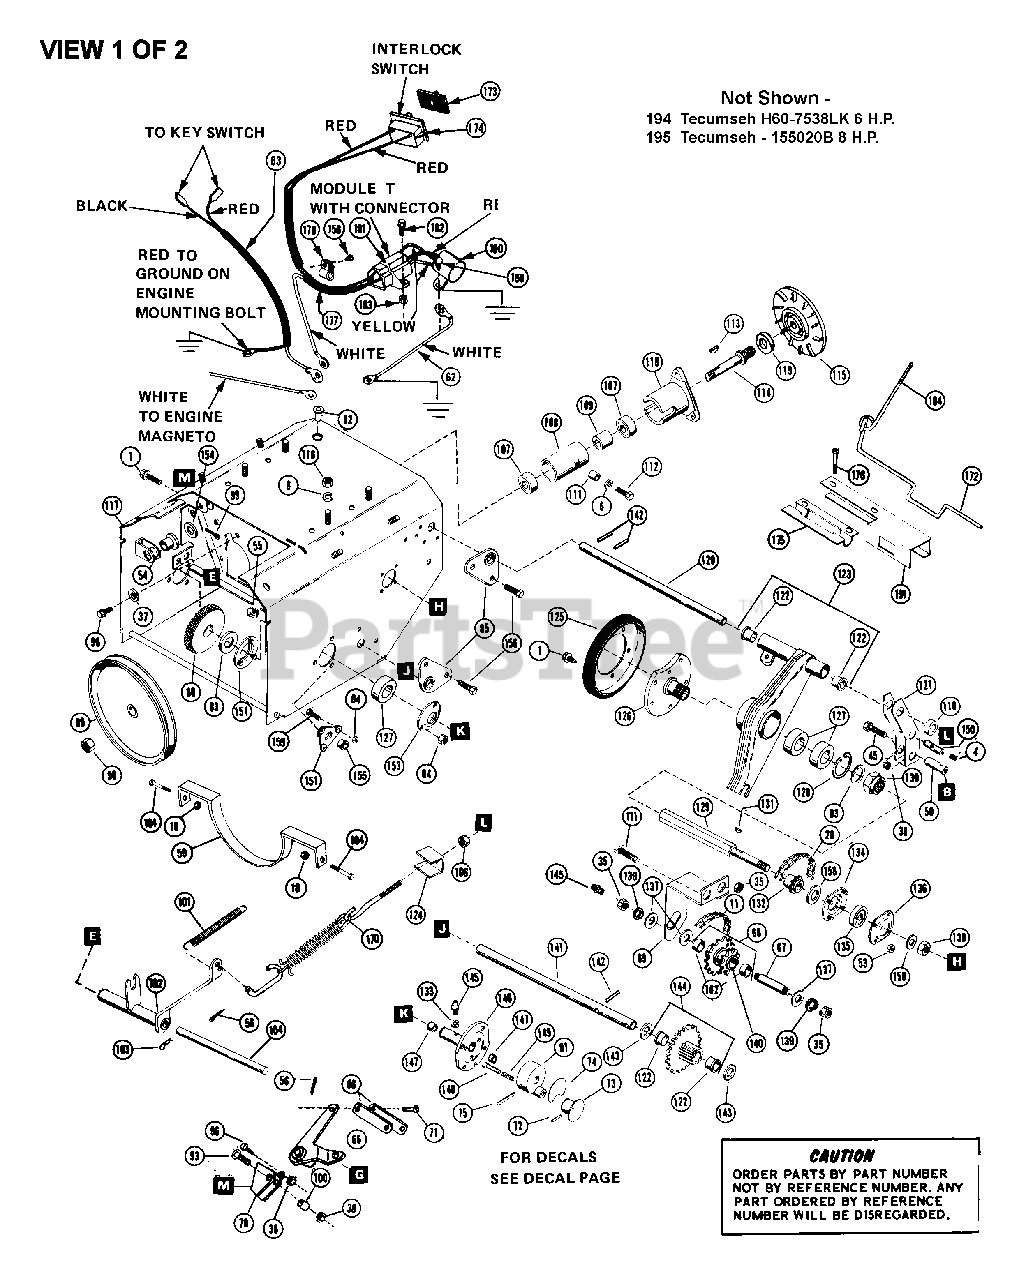 Ariens Parts on the TRACTOR PARTS (CONTINUED) Diagram for